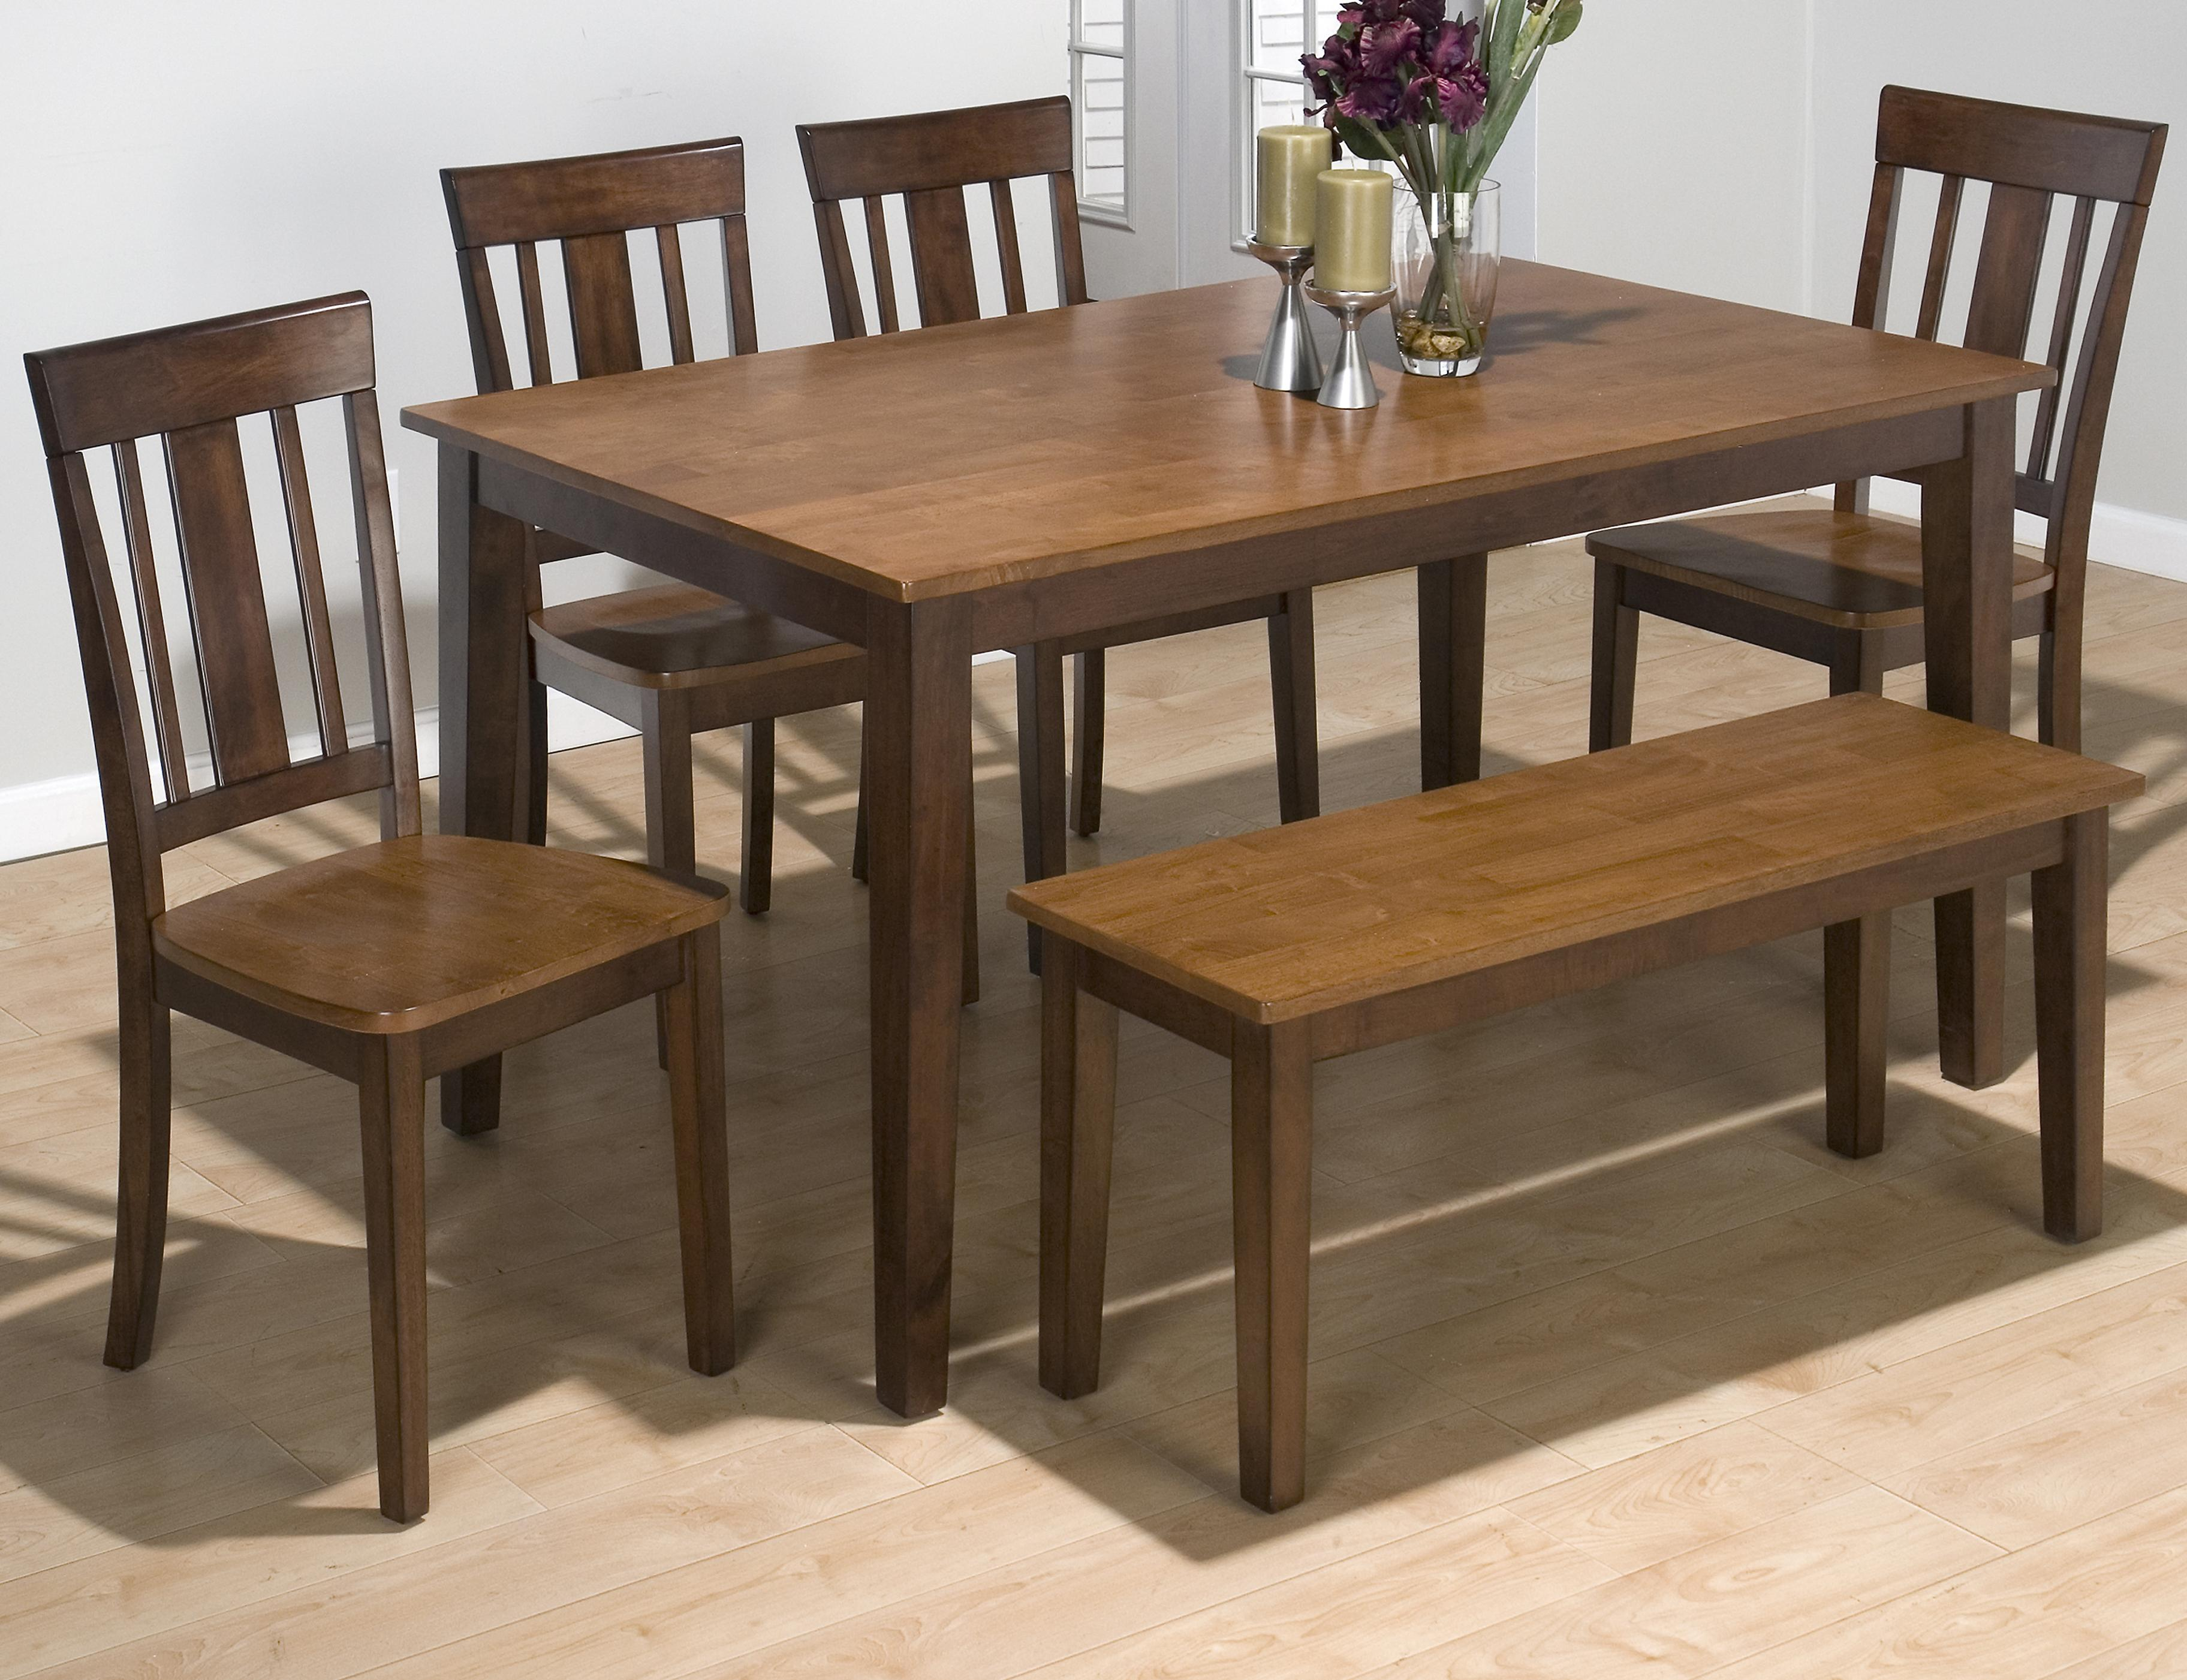 Belfort Essentials Kura Espresso And Canyon Gold Rectangle Table Set With 4  Chairs And Bench